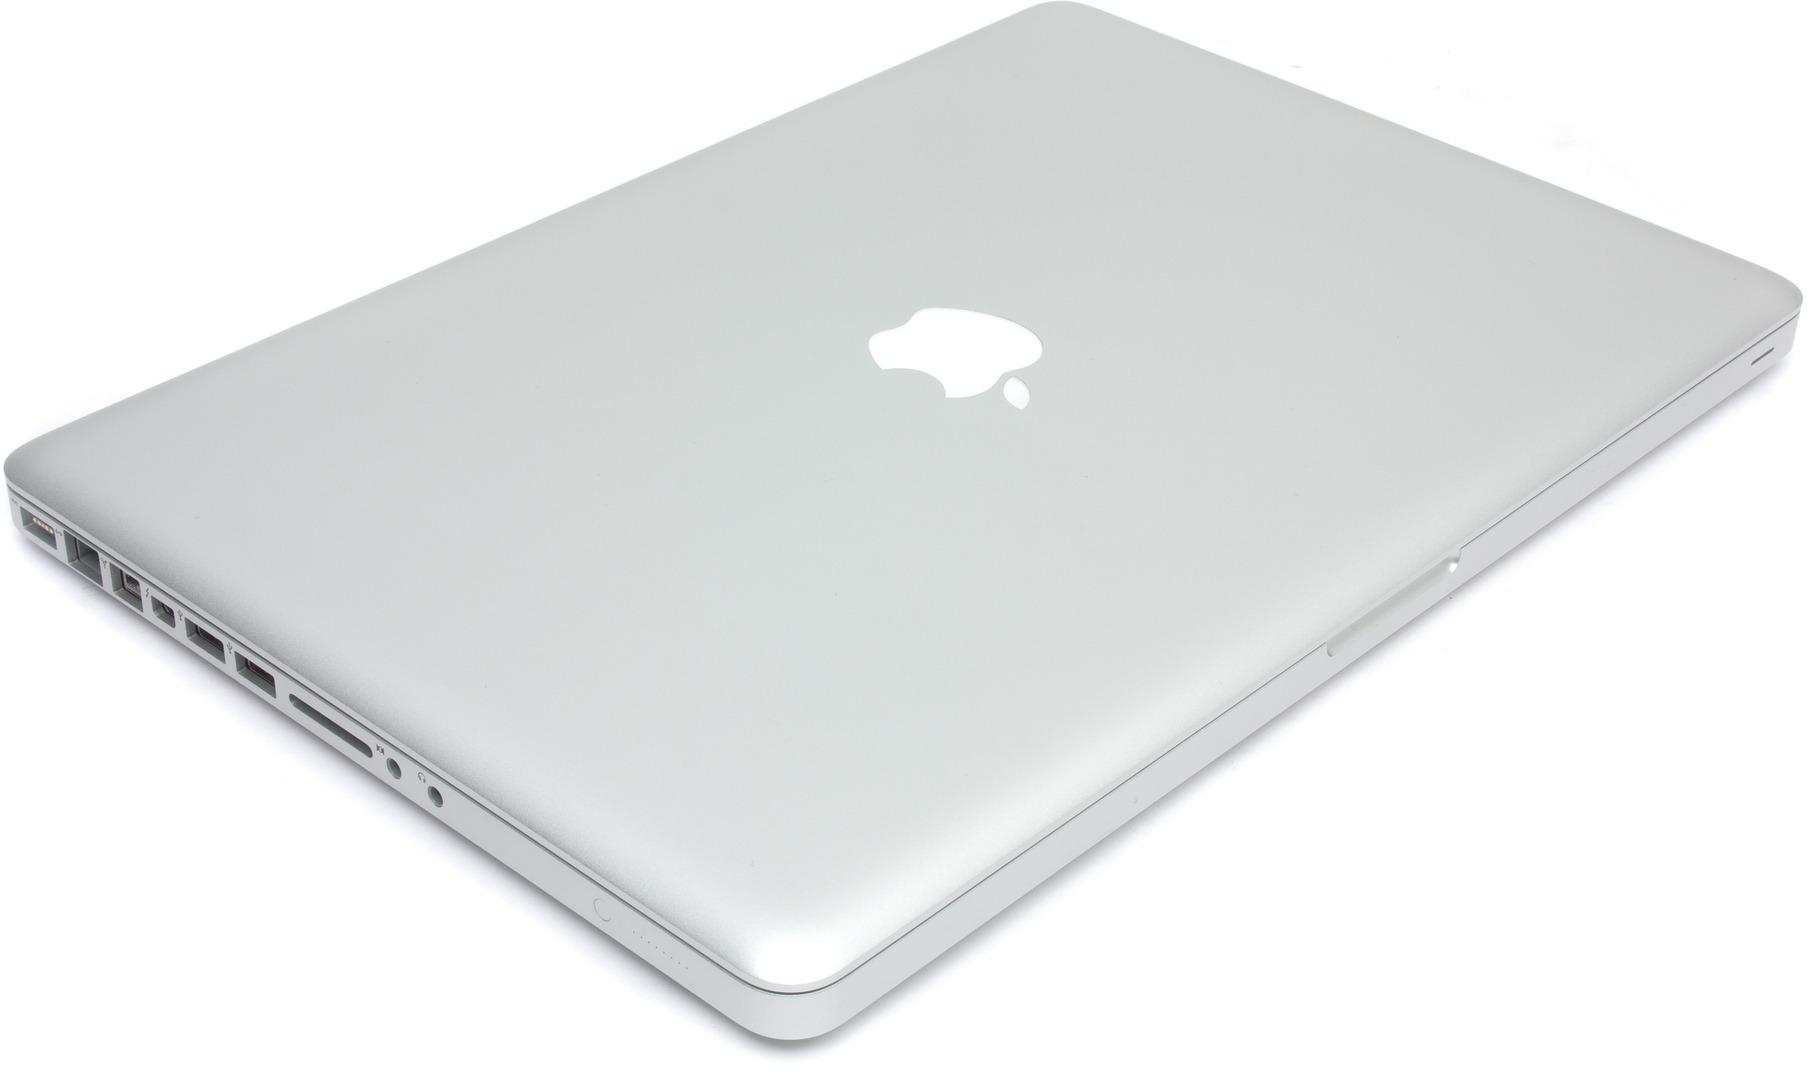 How To Add And Delete Printers On Macbook